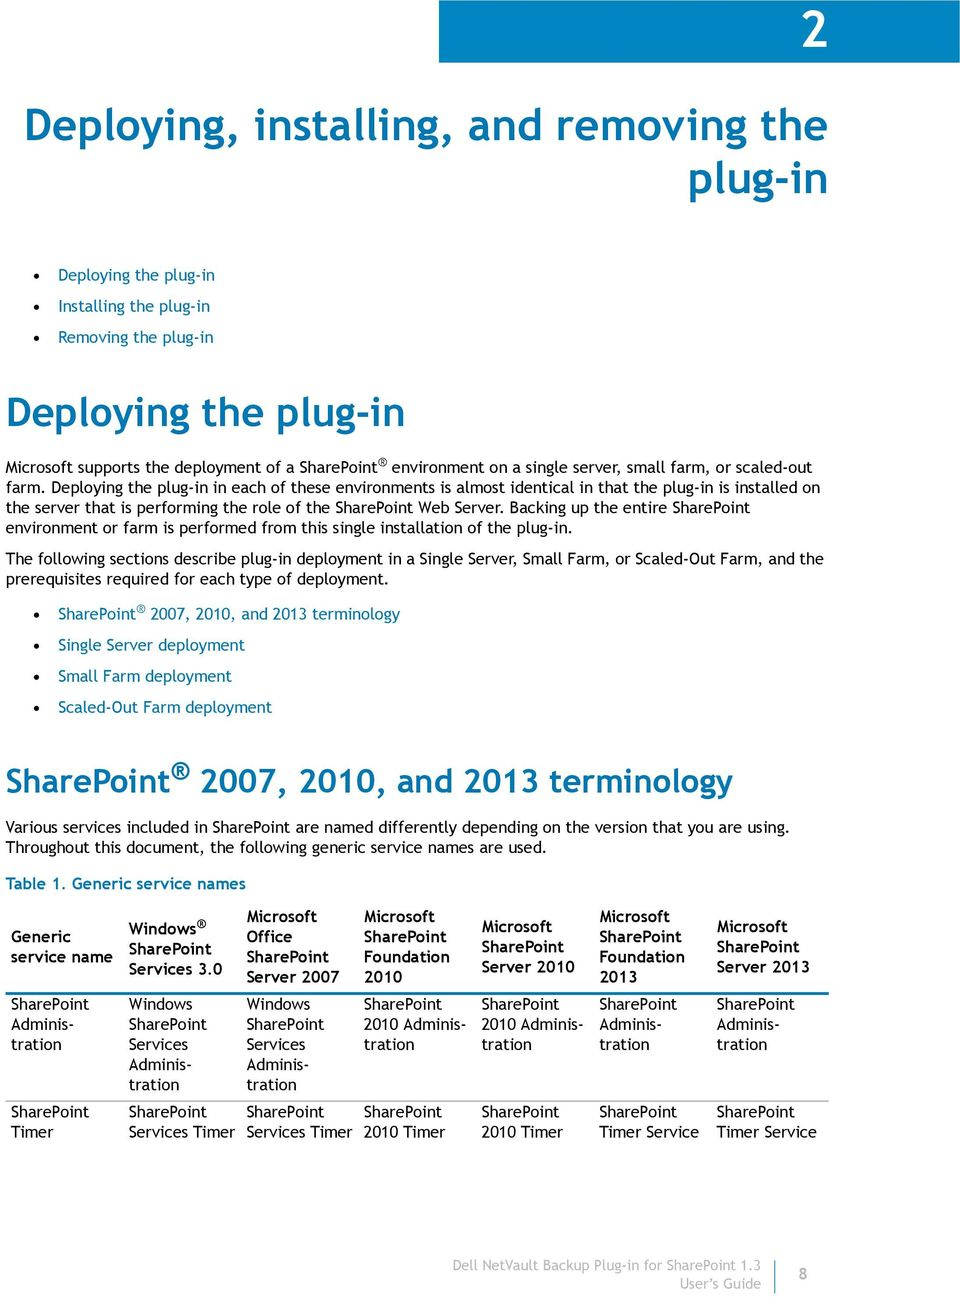 Deploying the plug-in in each of these environments is almost identical in that the plug-in is installed on the server that is performing the role of the Web Server.